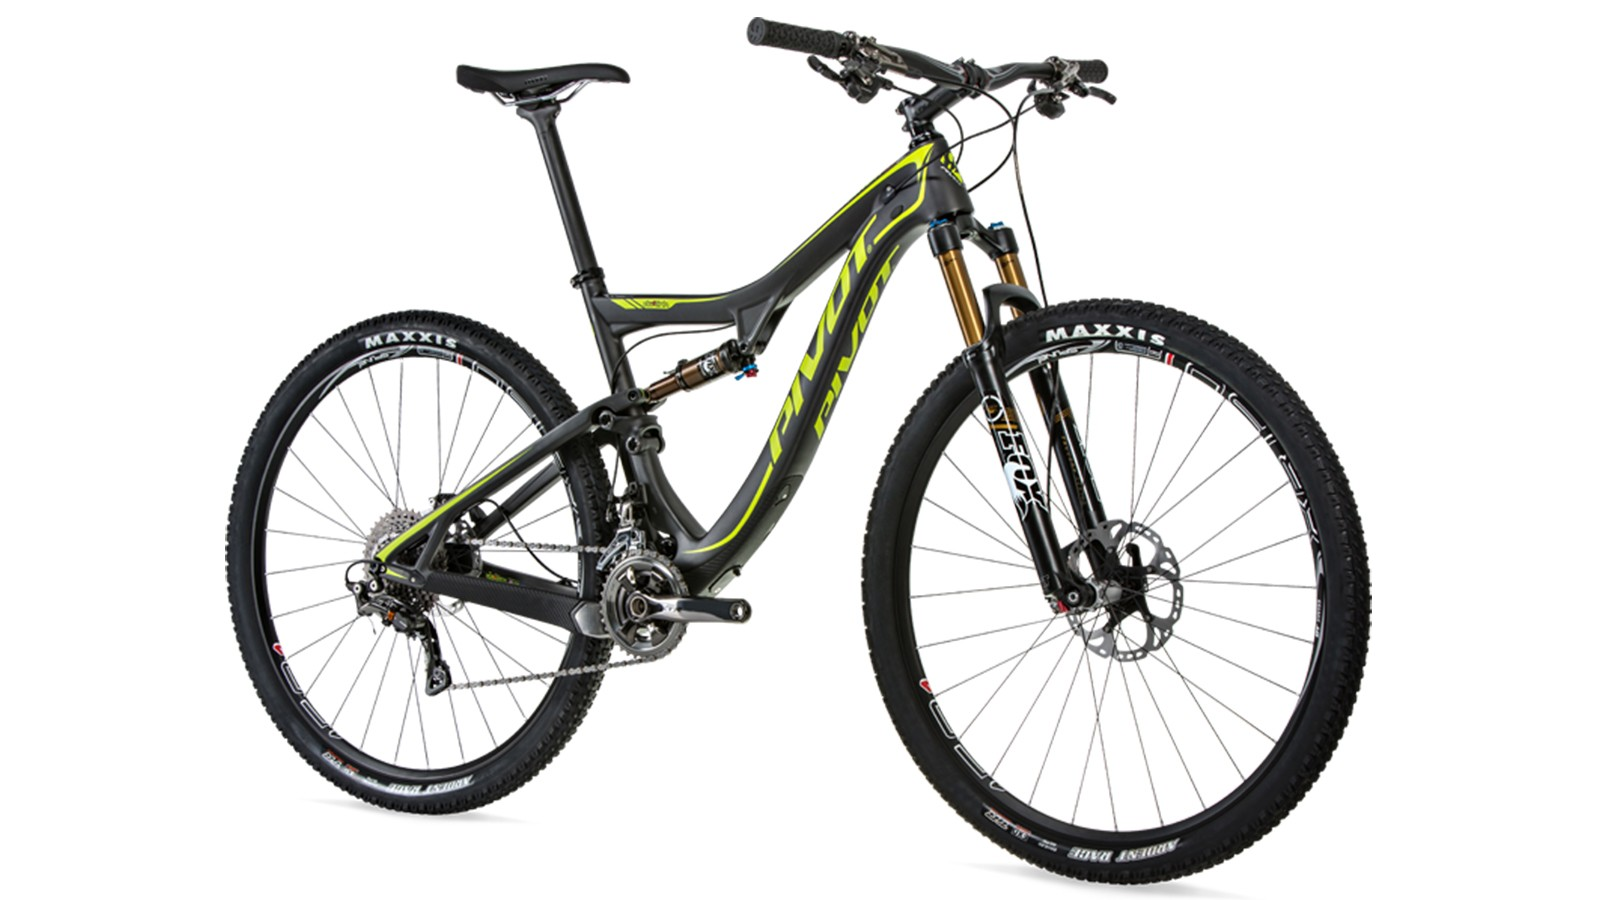 The updated Pivot Mach 429SL is now compatible with Shimano's XTR Di2 drivetrain